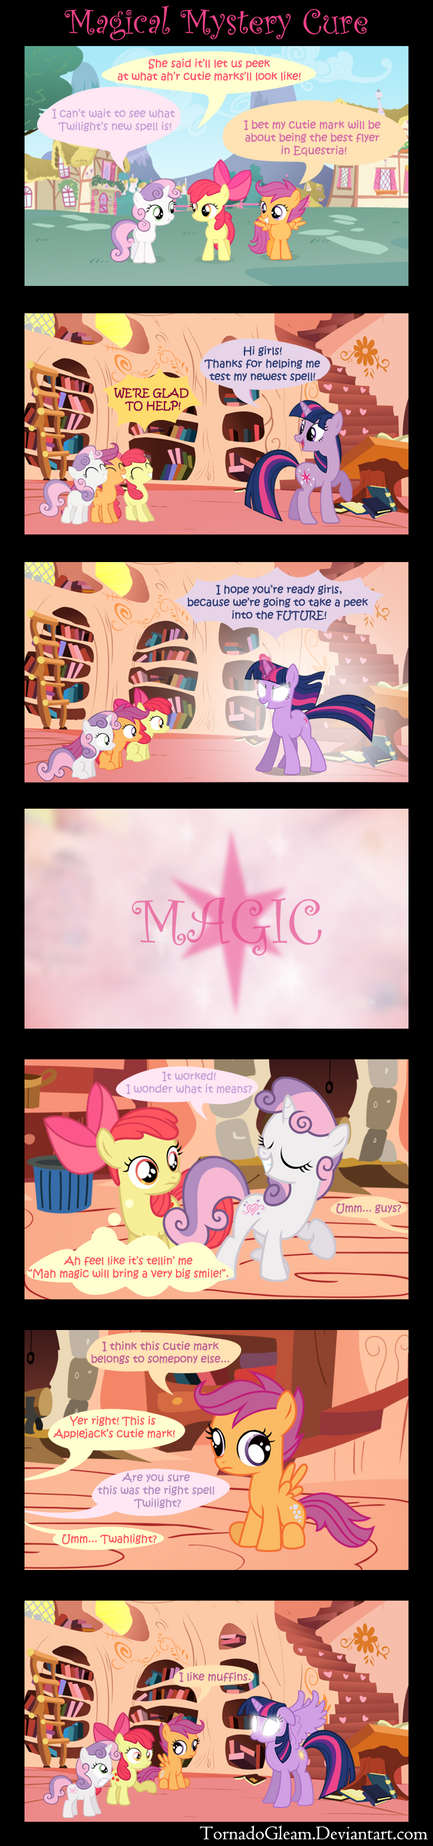 Magical Mystery Cure by TornadoGleam